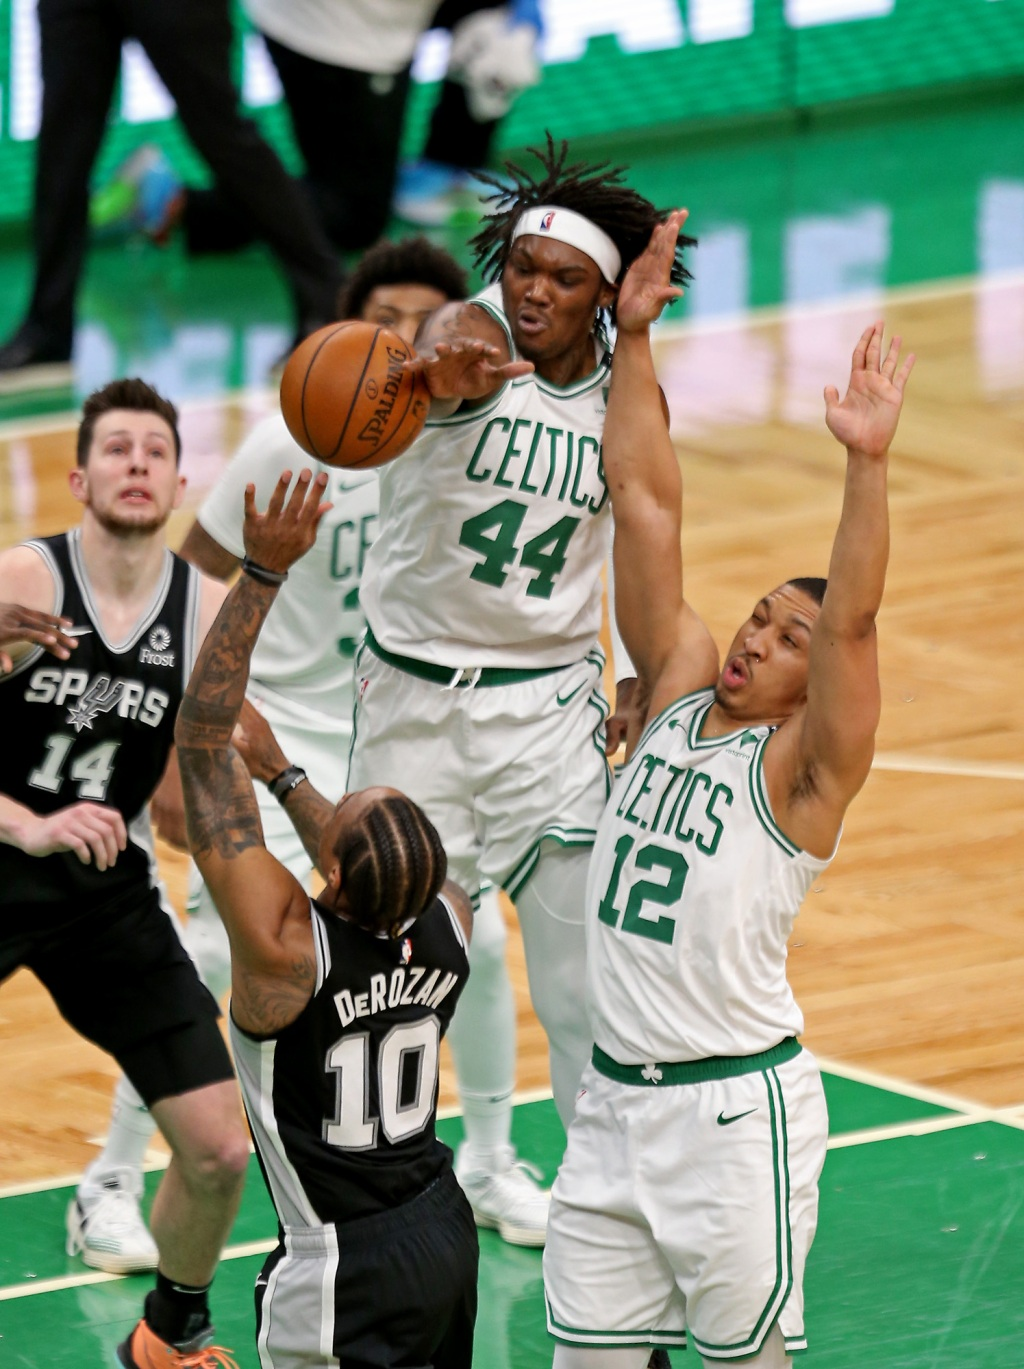 It's all about staying on the court for Celtics' Rob Williams